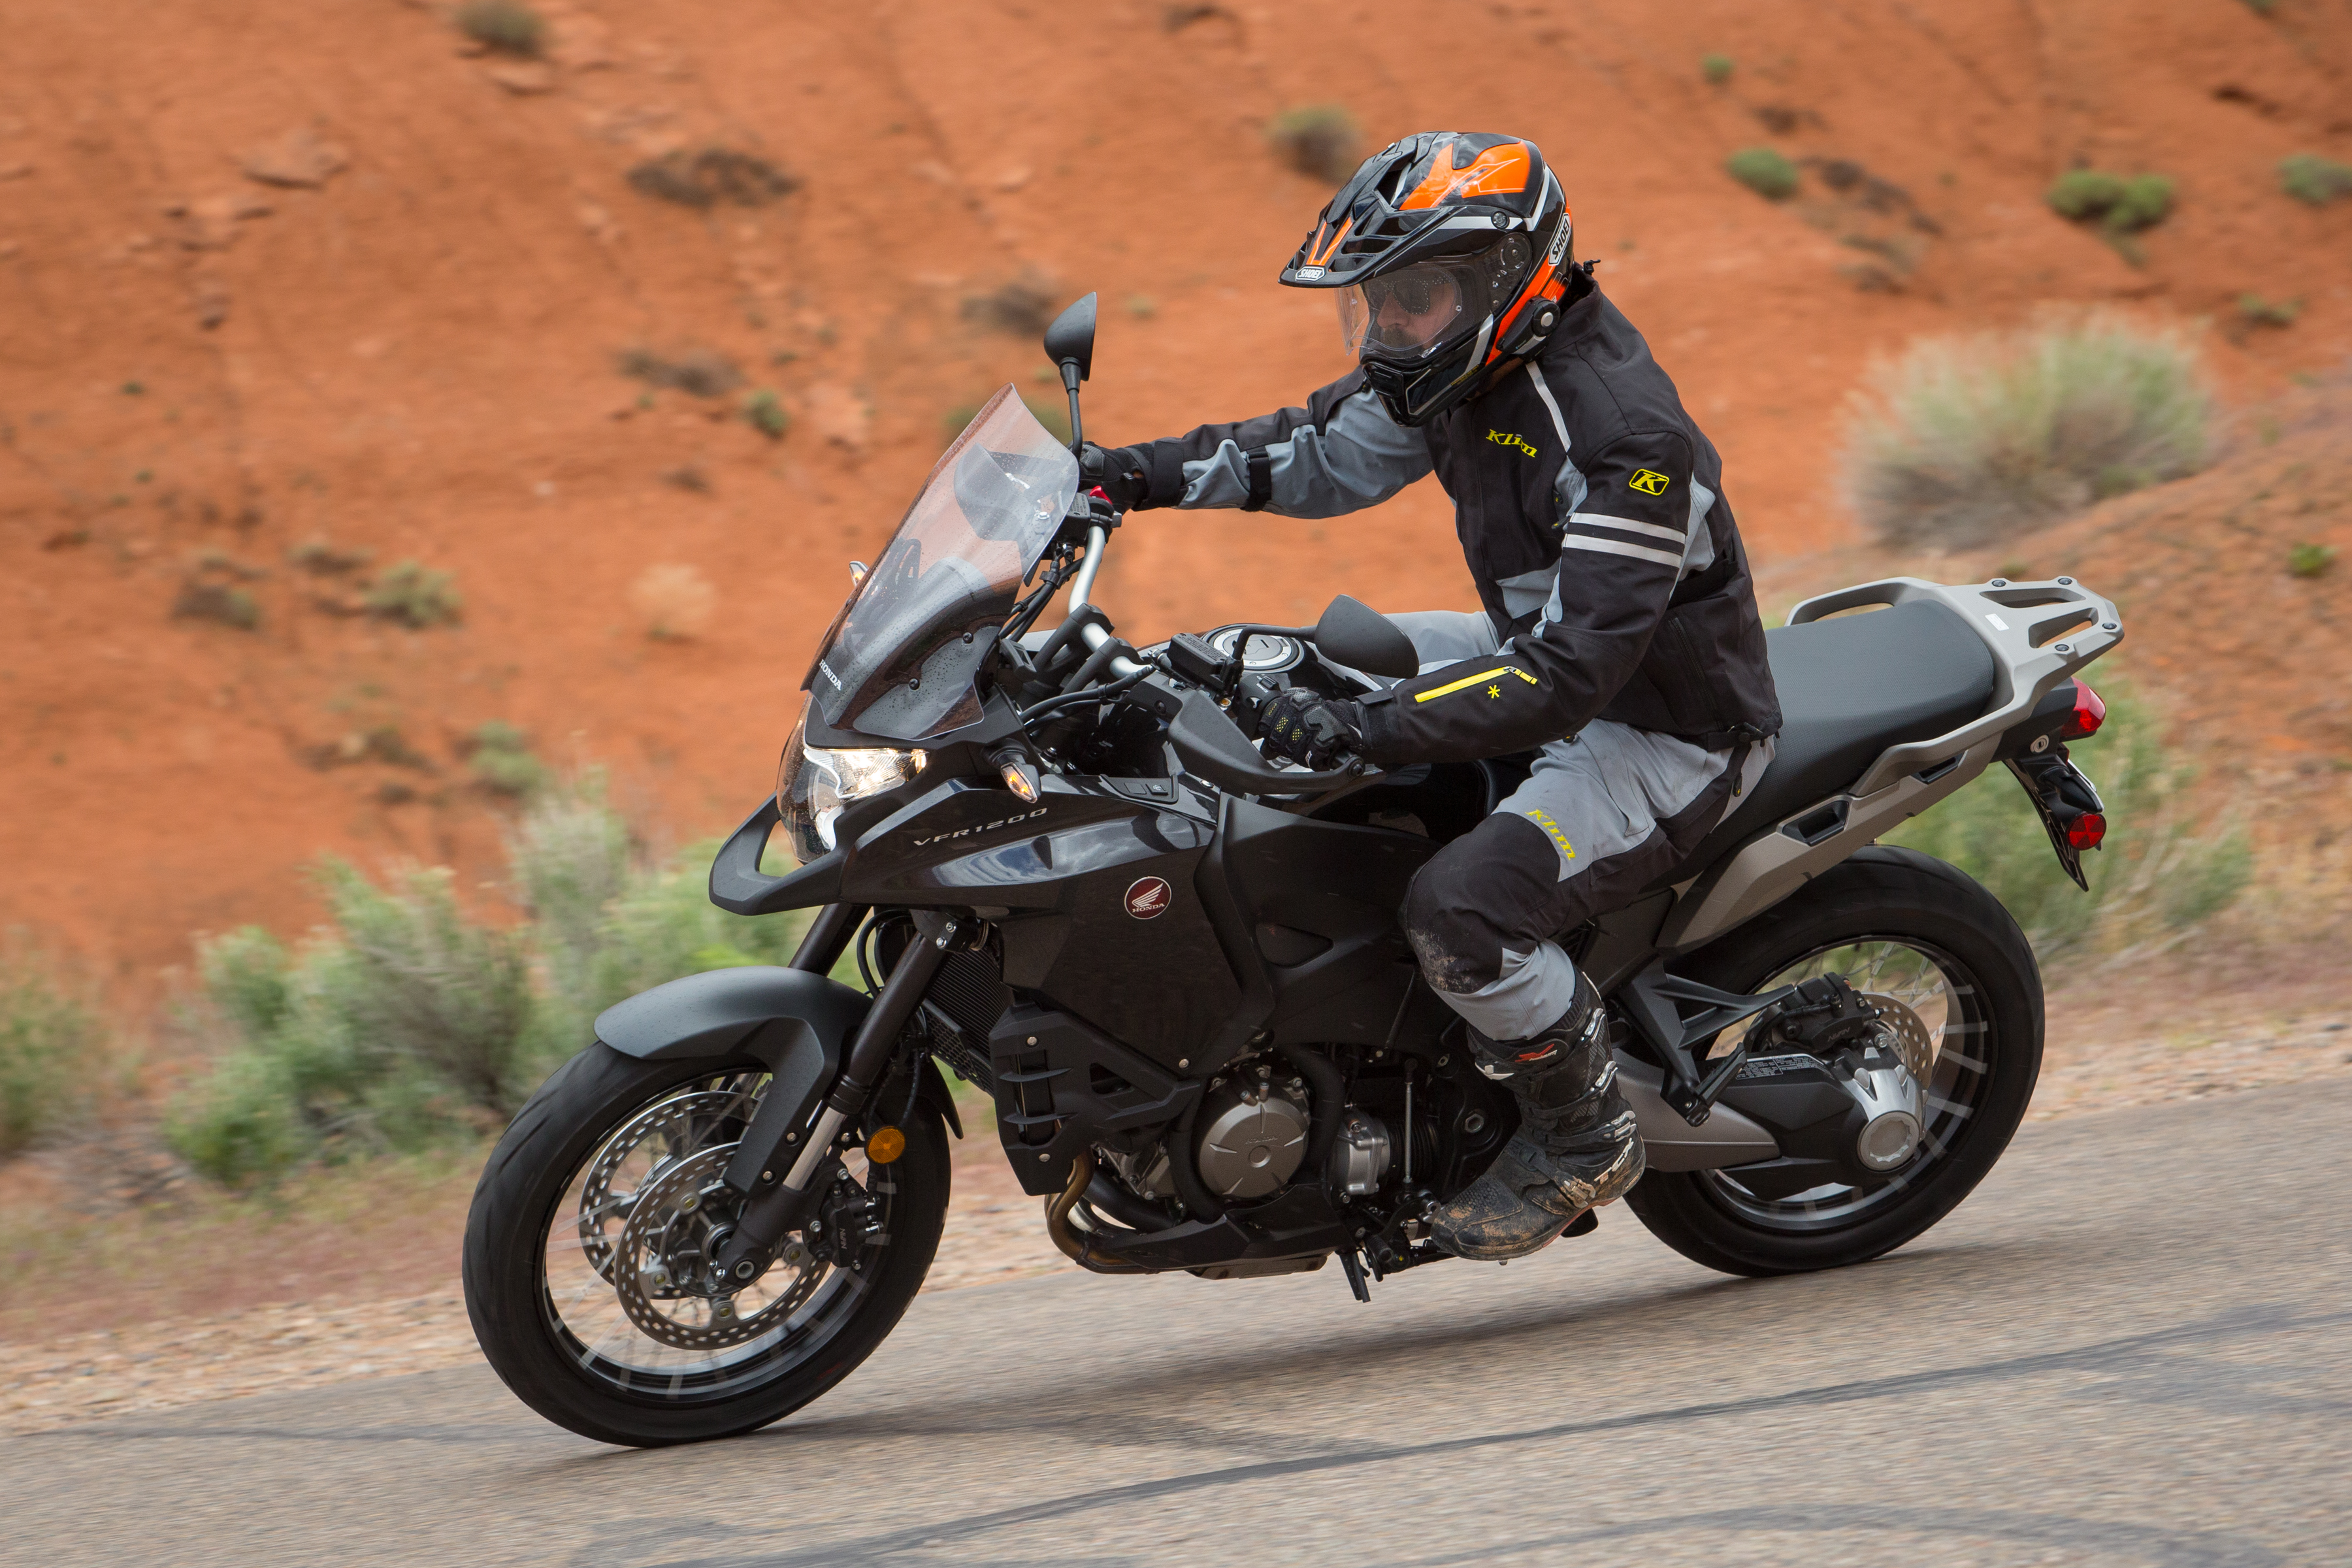 A quick ride on Honda's other adventure bike: The VFR1200X